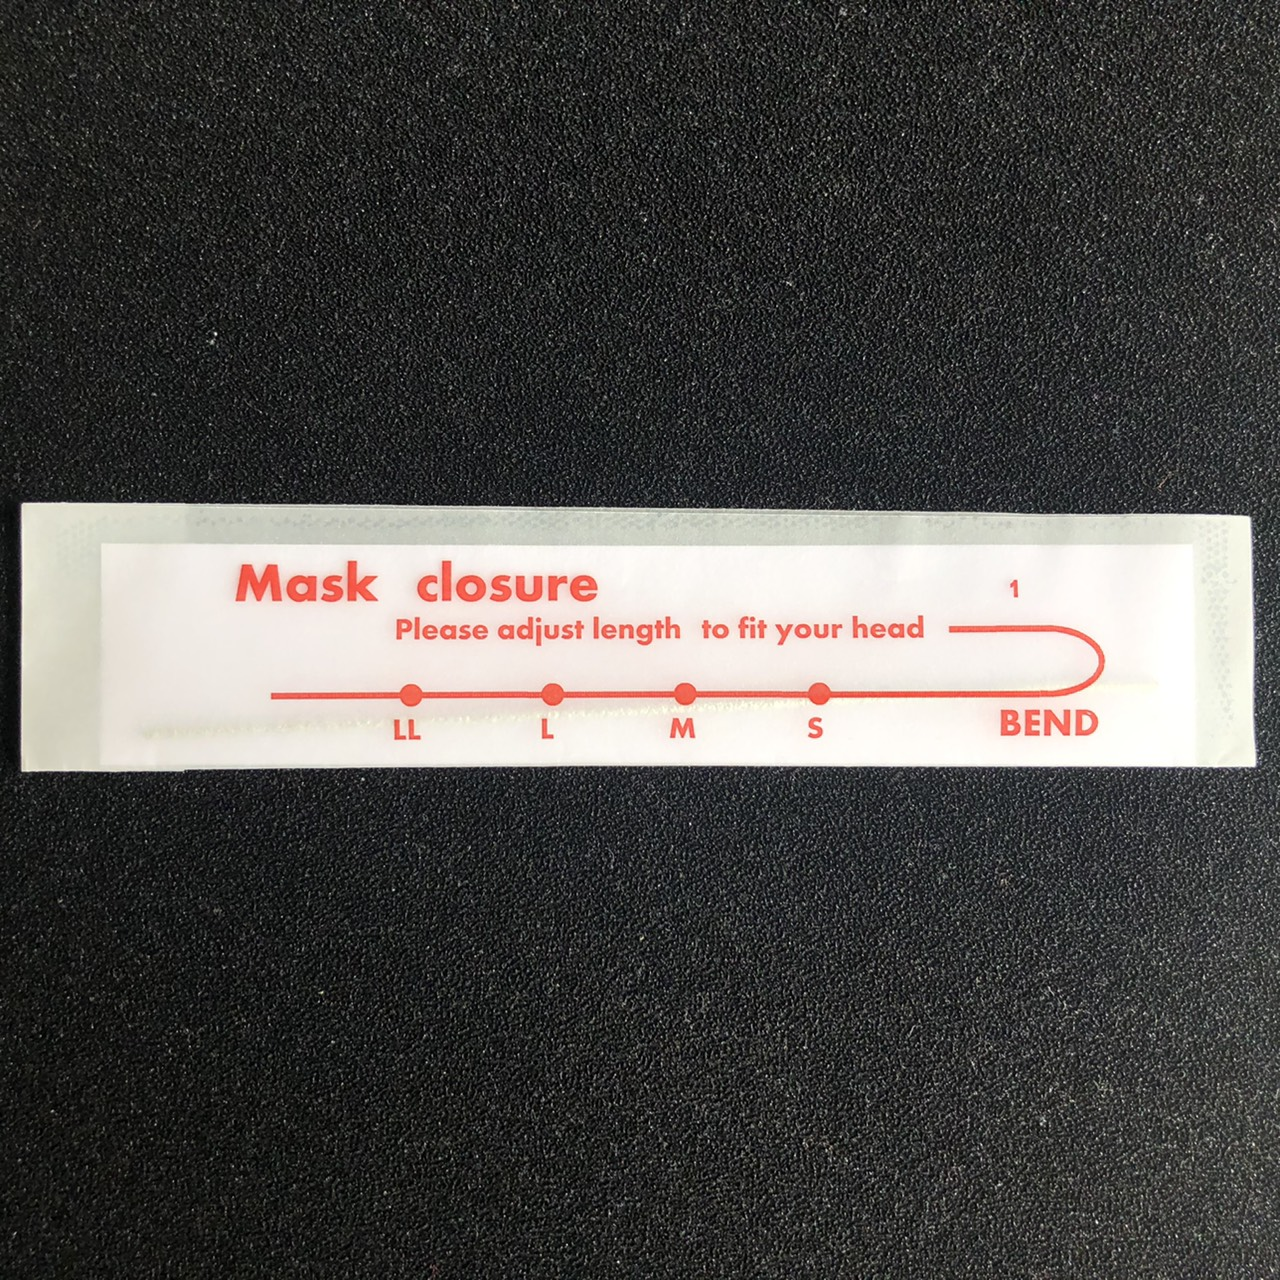 Mask closure